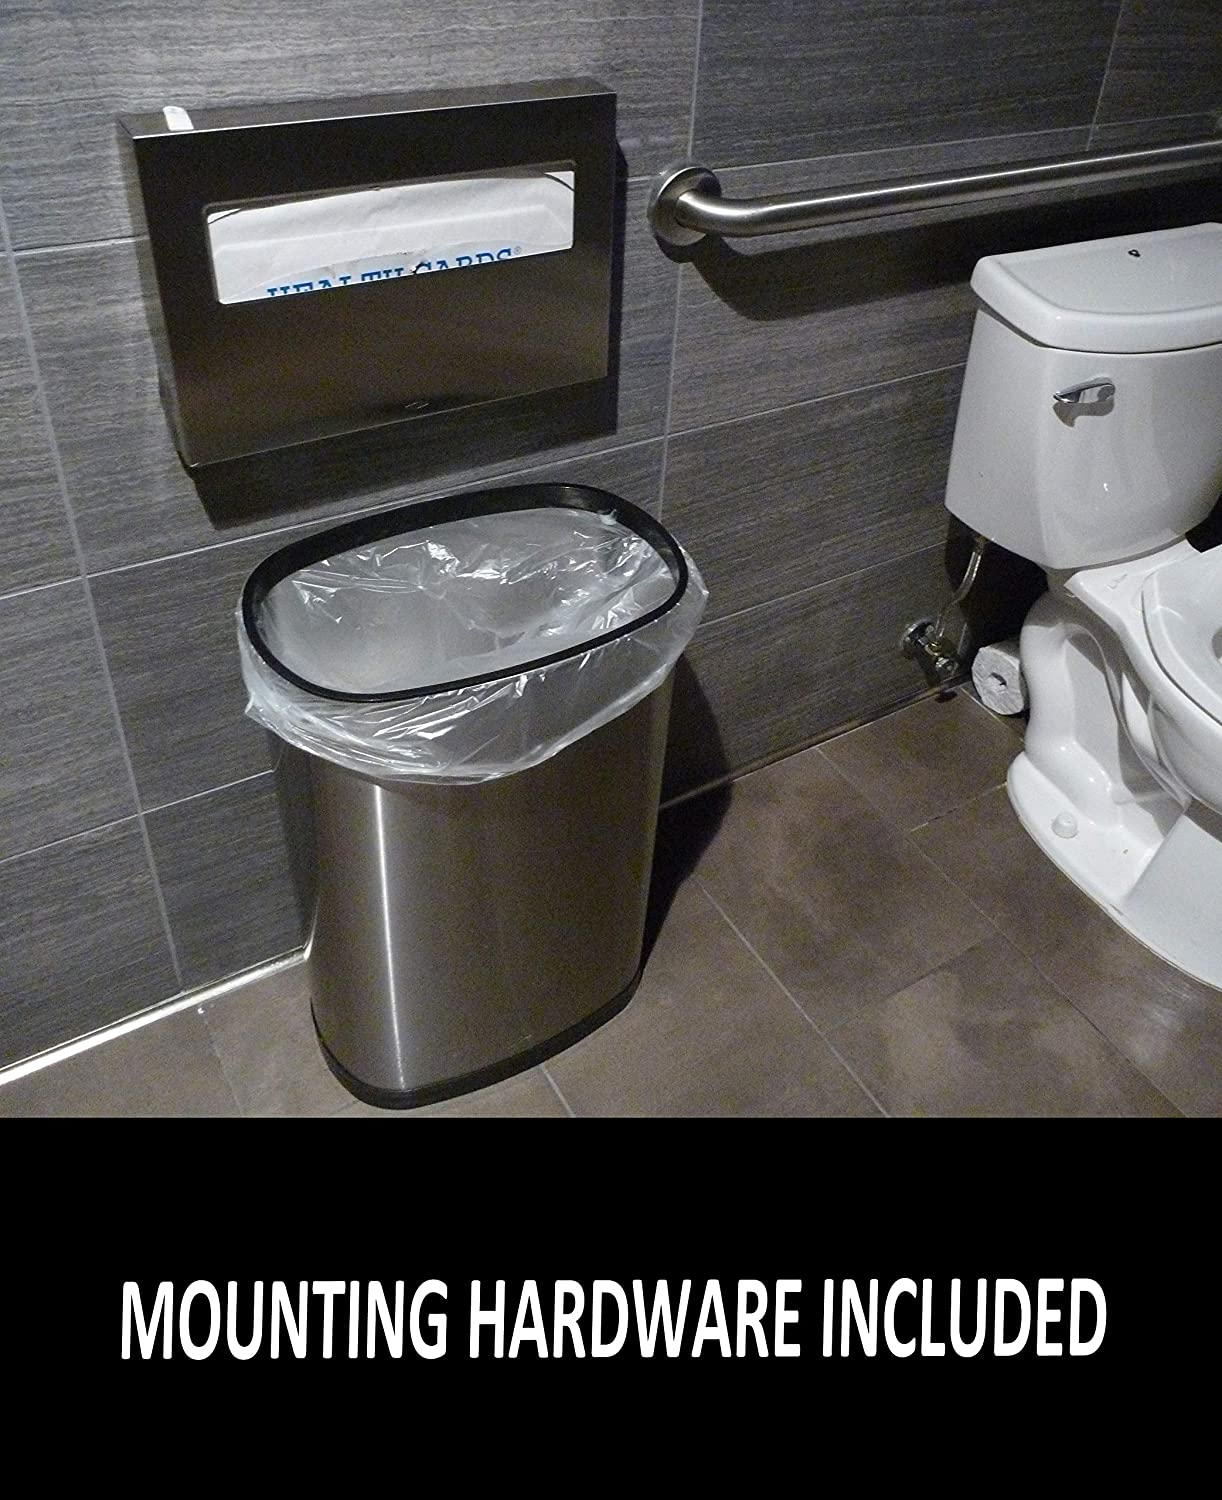 B077BGHHS1 Toilet Seat Cover Dispenser | Stainless Steel | Mounting Hardware and Install Instructions Included | Fits Single and 1/2 Fold Seat Covers. 61ARRo4rbdL